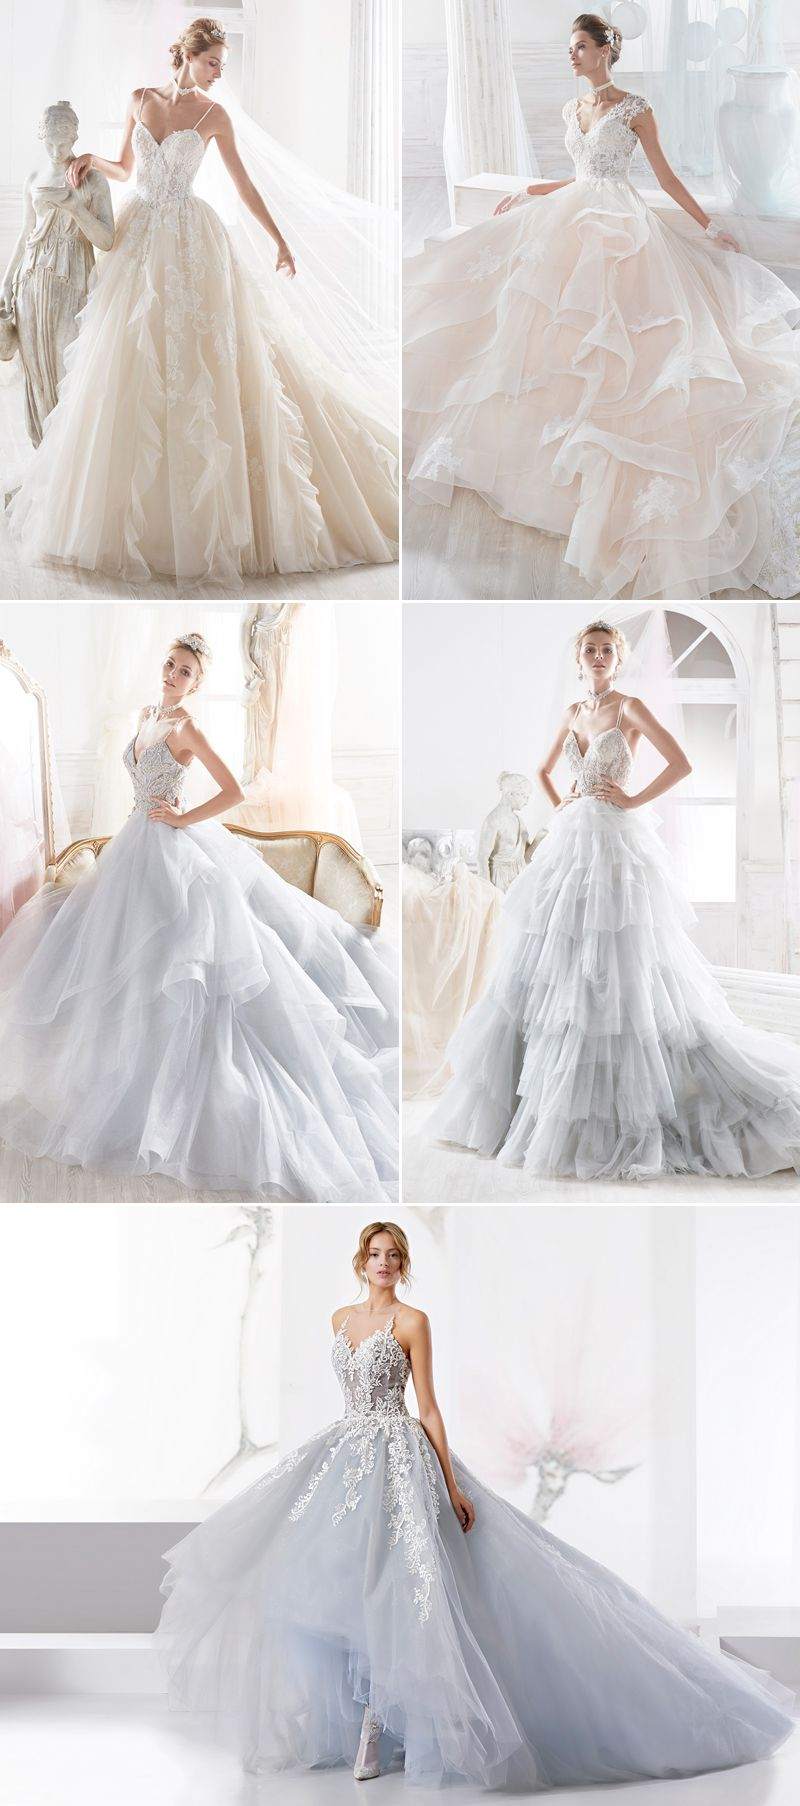 37 Jaw Droppingly Beautiful Gowns For A Ballroom Wedding Praise Wedding Bow Wedding Dress Ballroom Wedding Dresses Beautiful Wedding Dresses